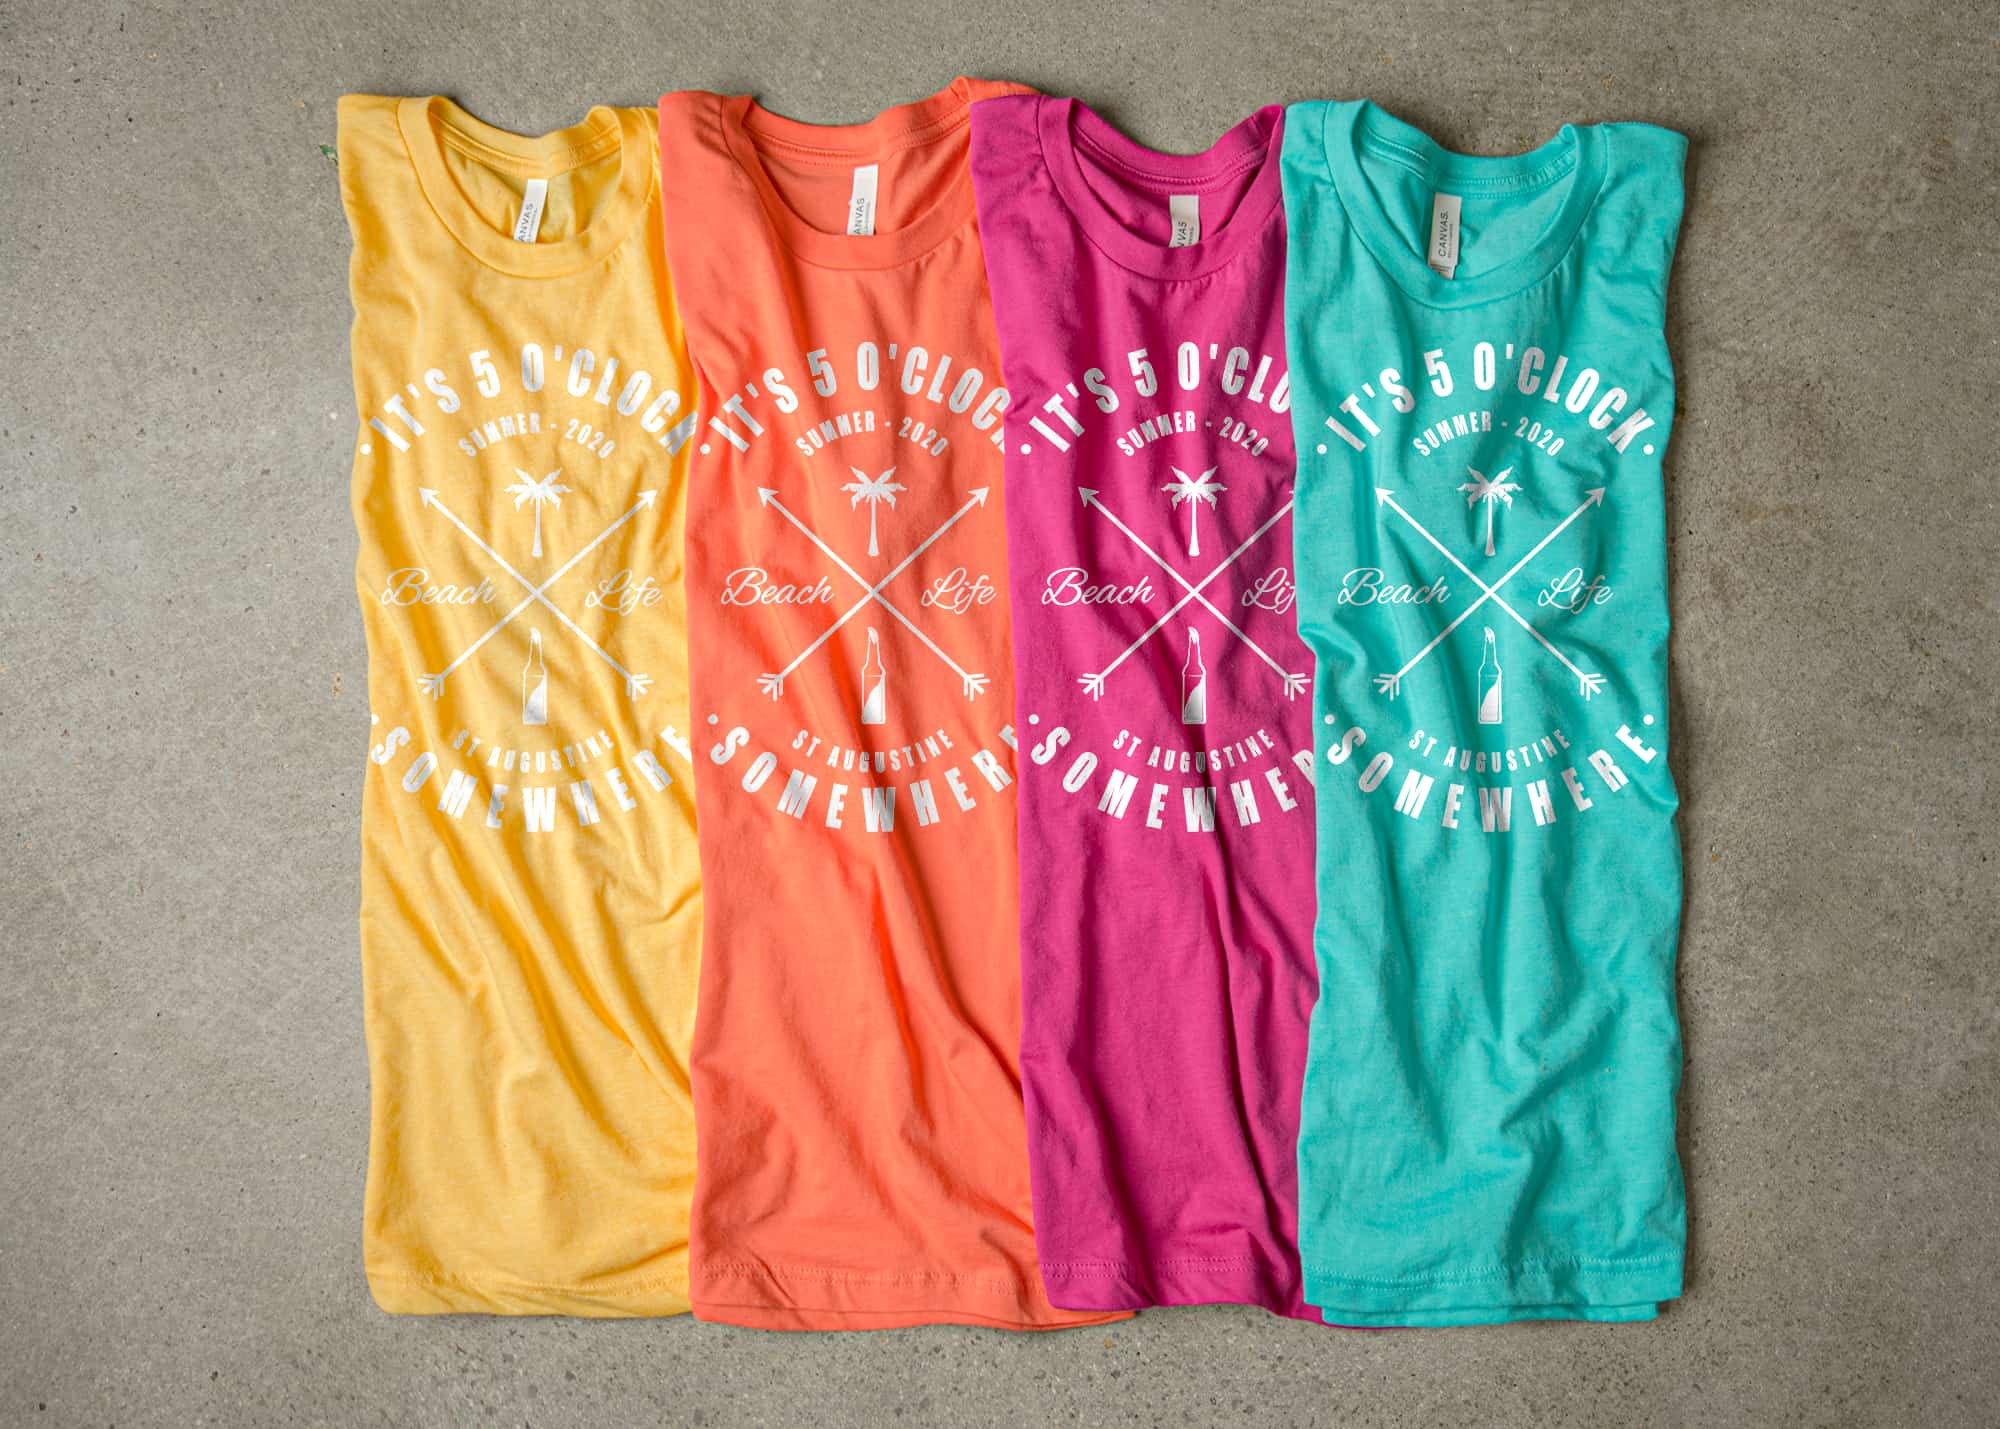 The tetradic color scheme made with an arrangement of t-shirts.